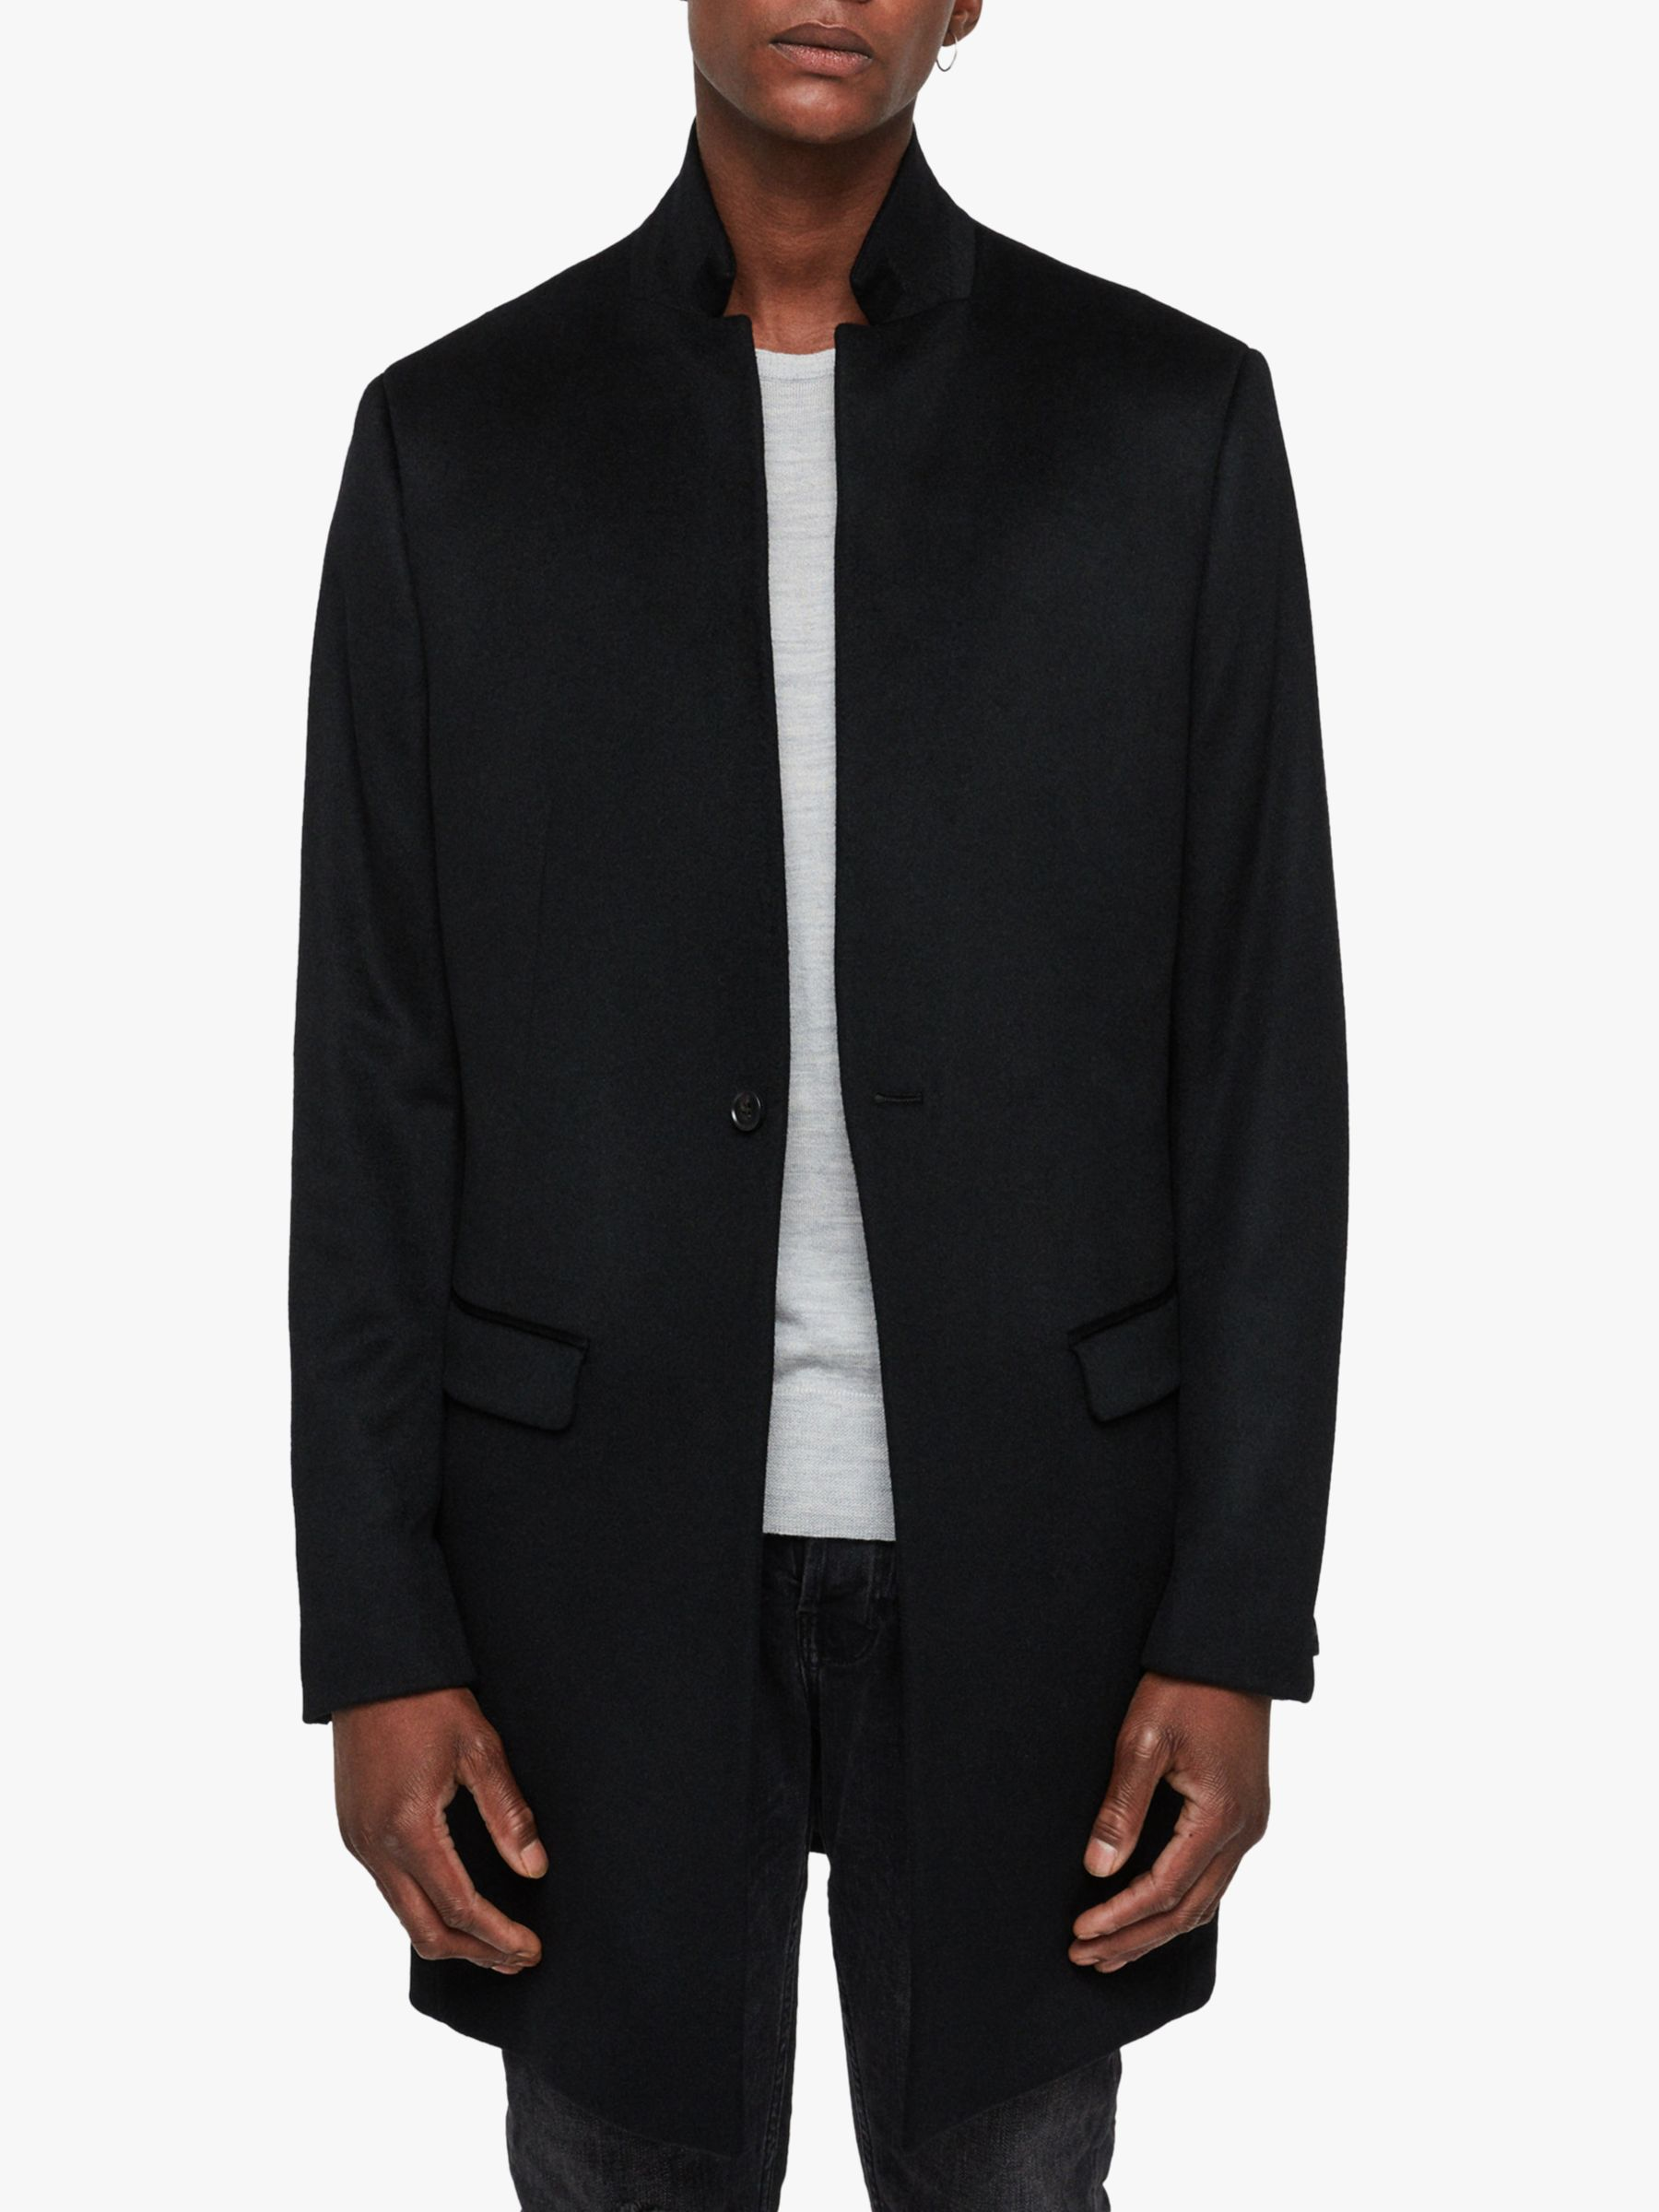 AllSaints AllSaints Bodell Wool Tailored Coat, Black